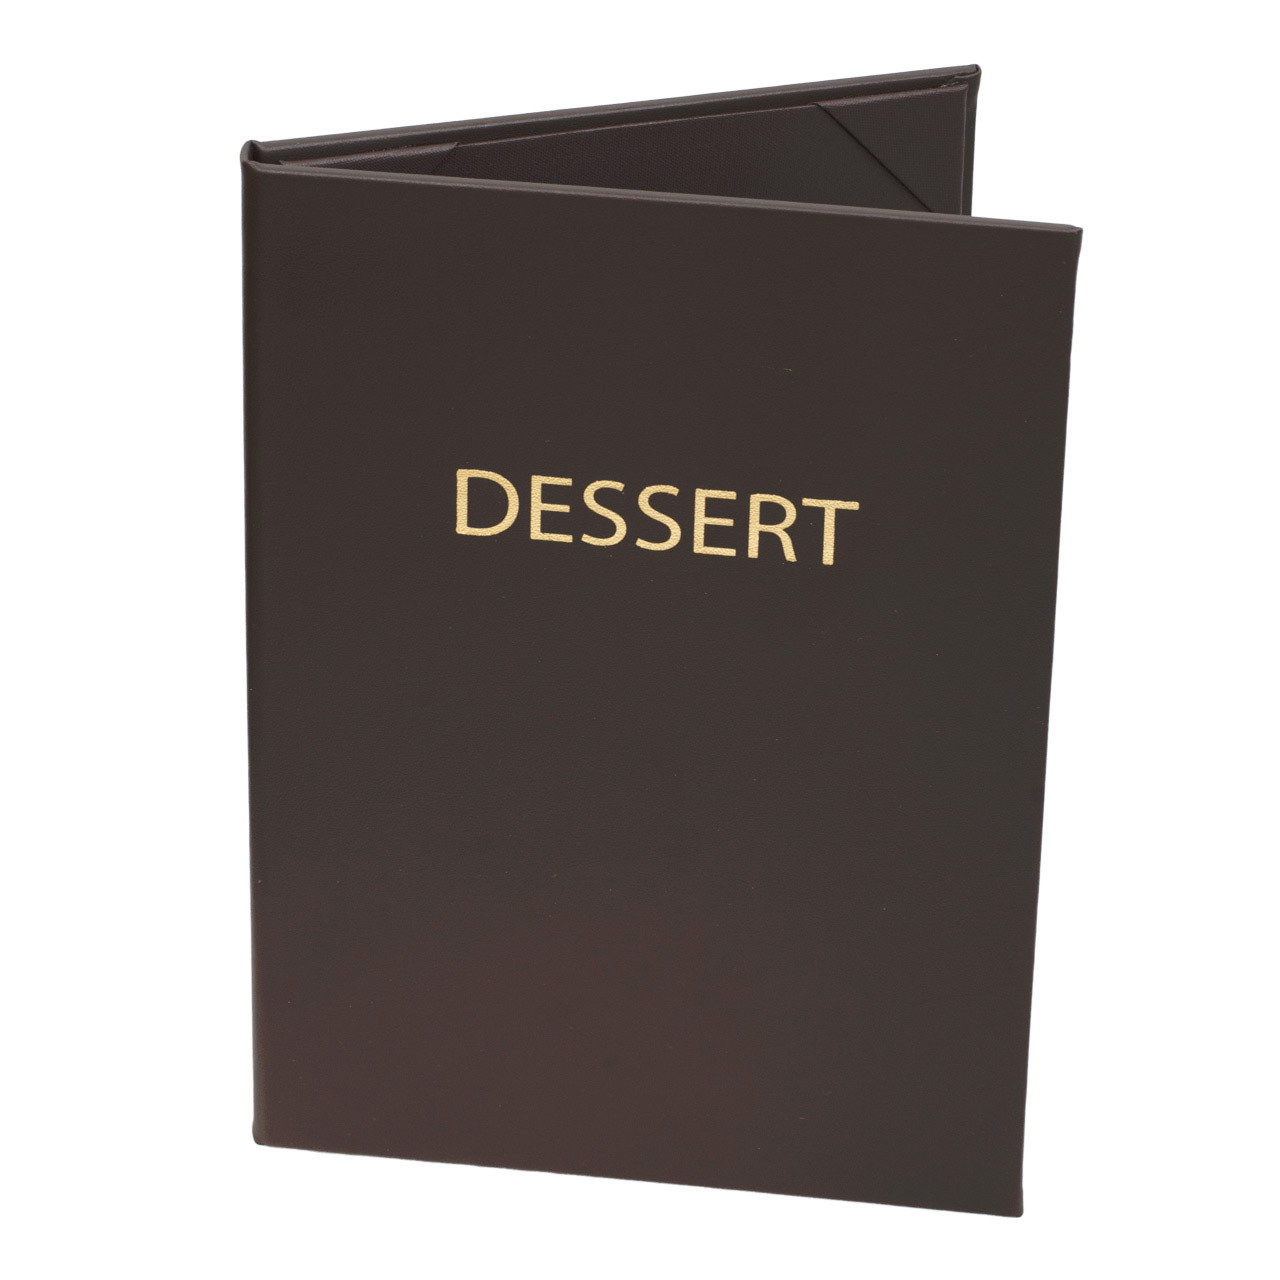 Dessert Menu Cover in Dark Brown Faux Leather Gold Foil Stamp.  2-Panels for 5.5 in. x 8.5 in. Menu Sheets